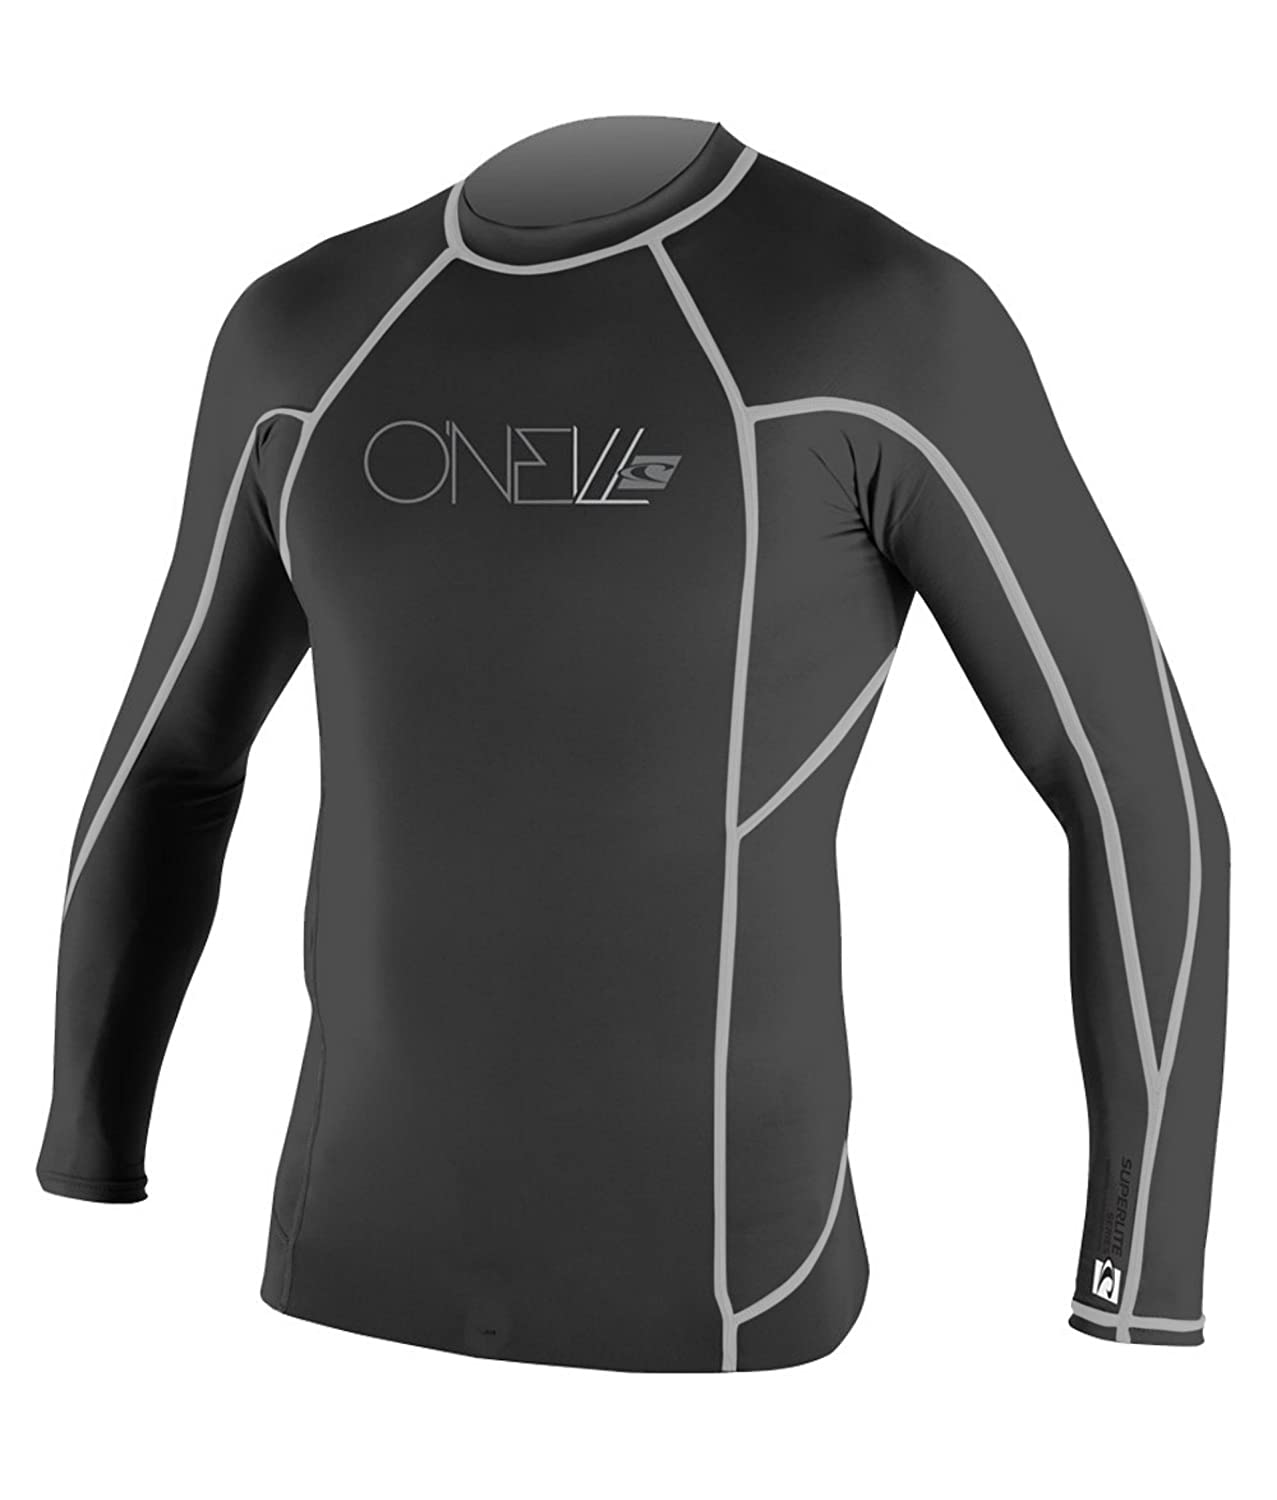 ONeill-Mens-Wetsuits-Basic-Skins-Long-Sleeve-Crew